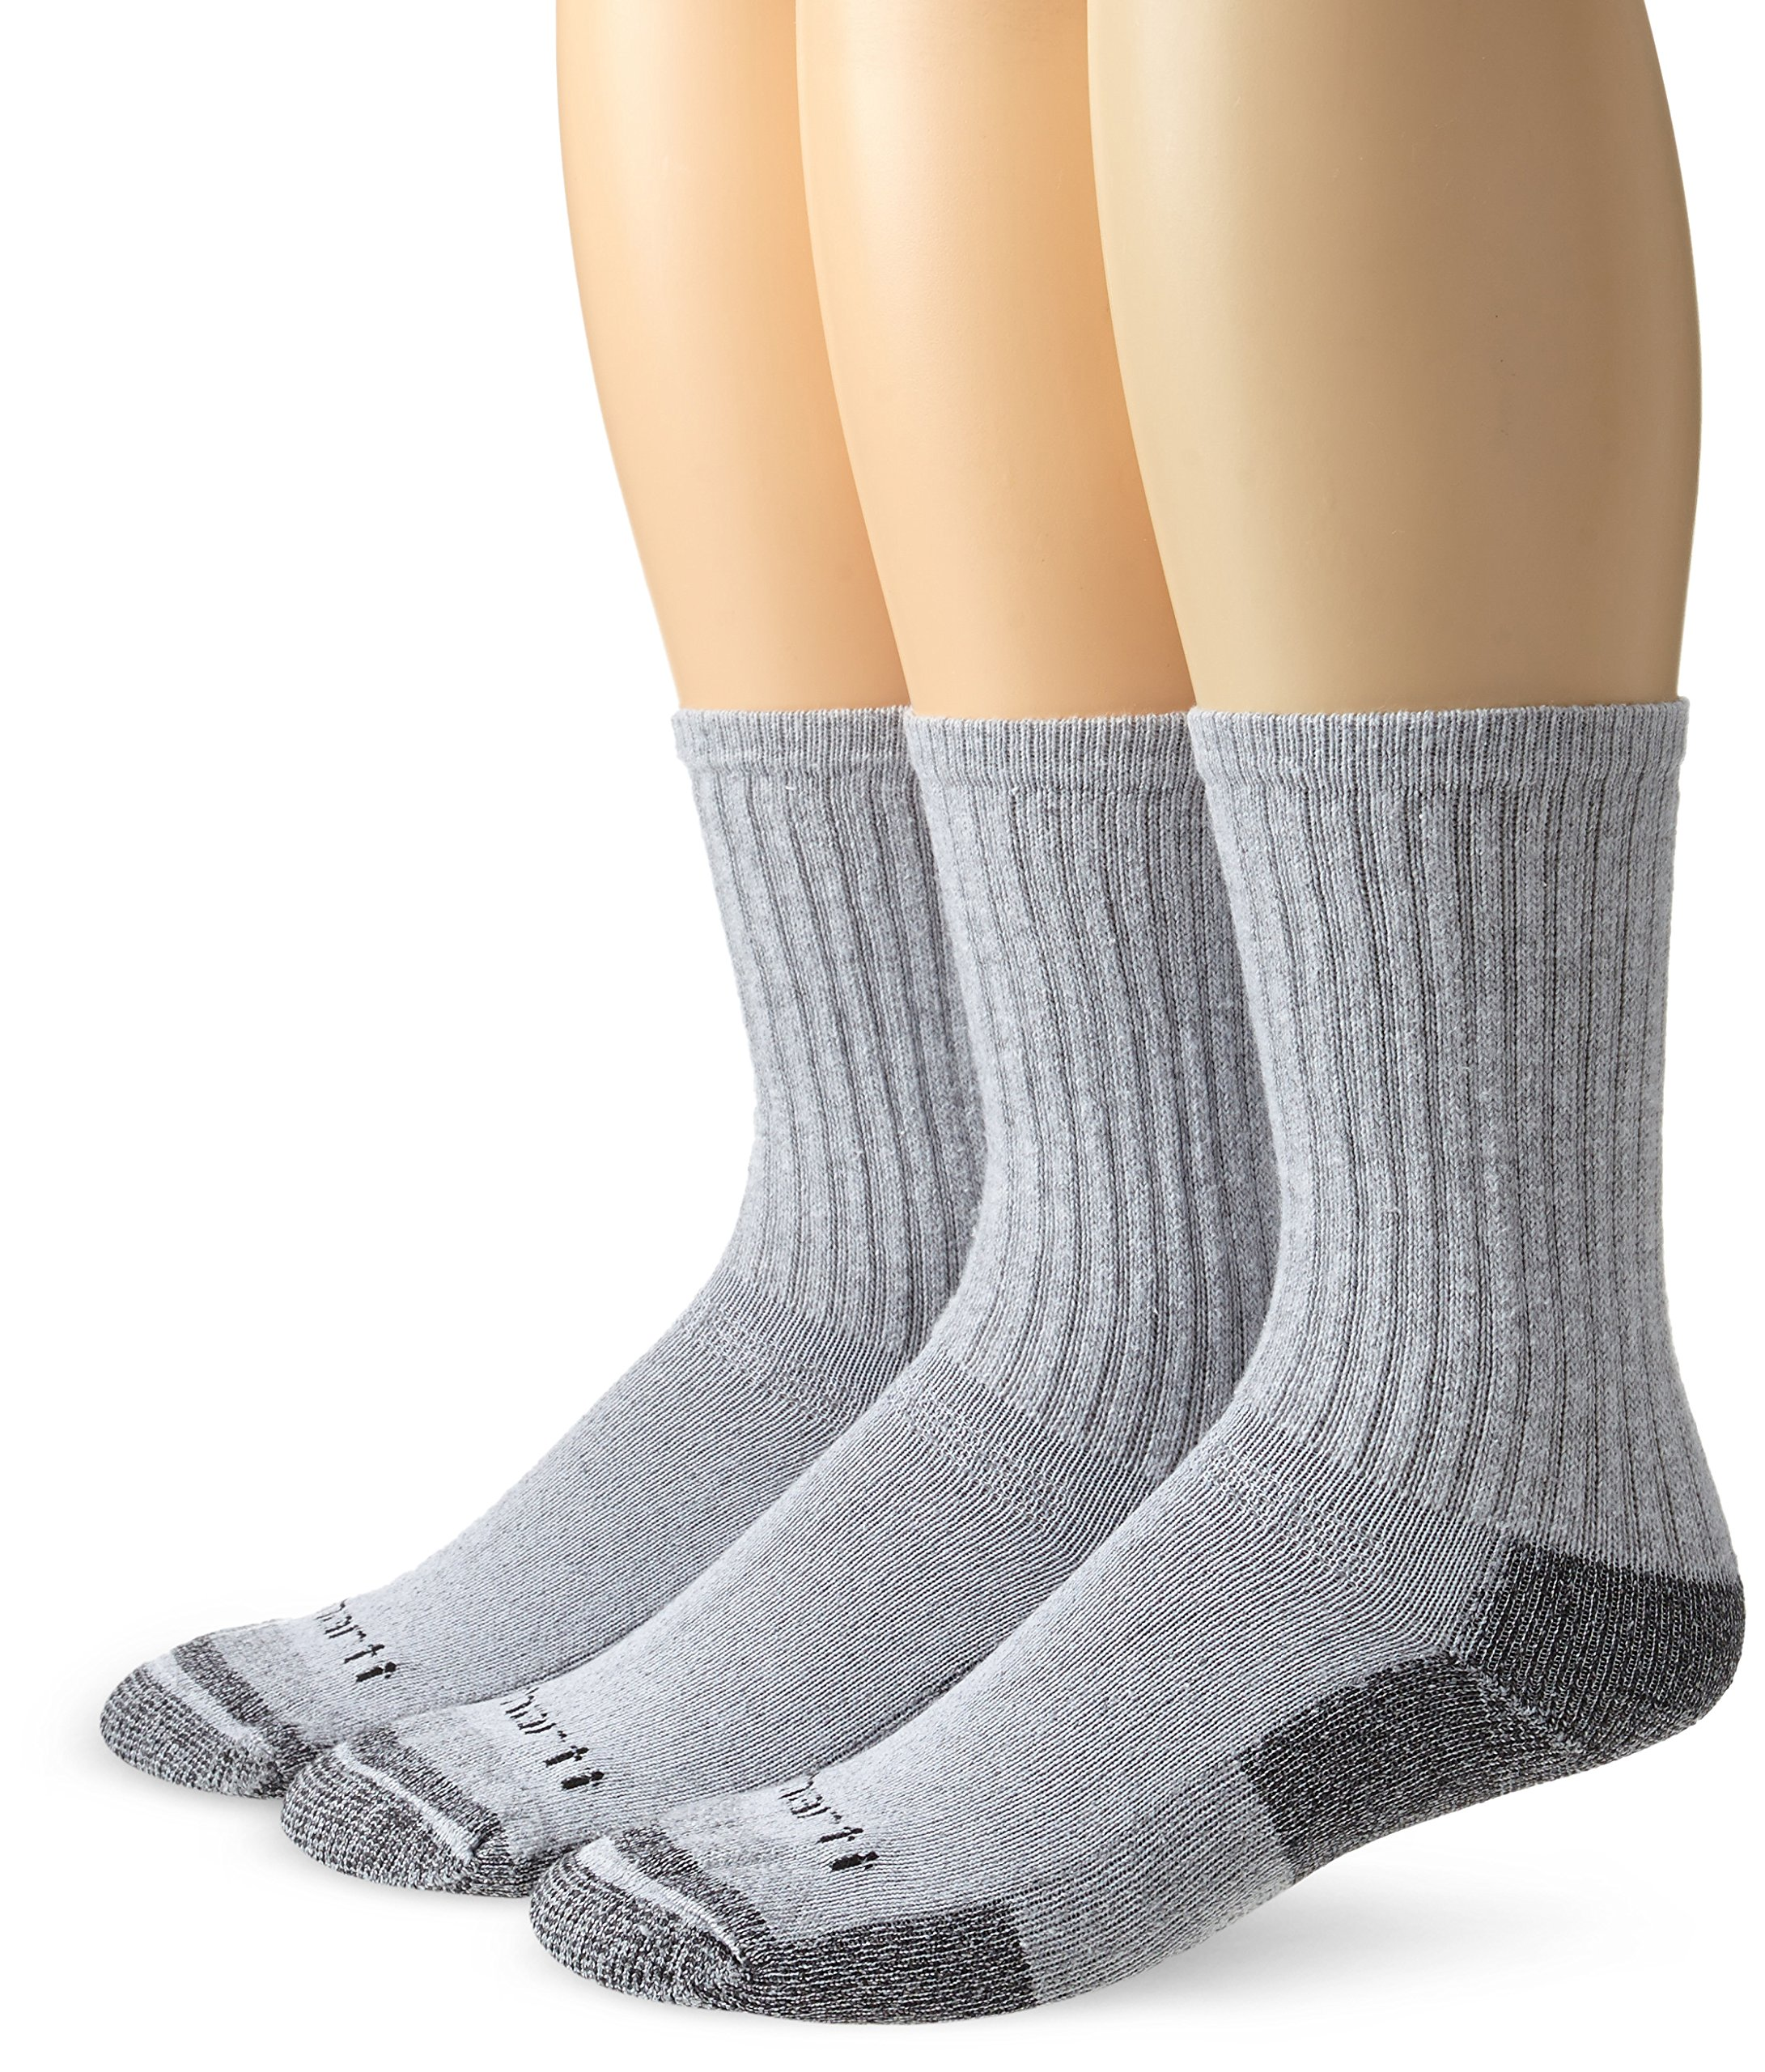 Carhartt Men's Breathable & Odor Resistant Cotton Crew Work Socks 3 Pair gray Large(Shoe Size:6-12/Sock Size: 10-13)